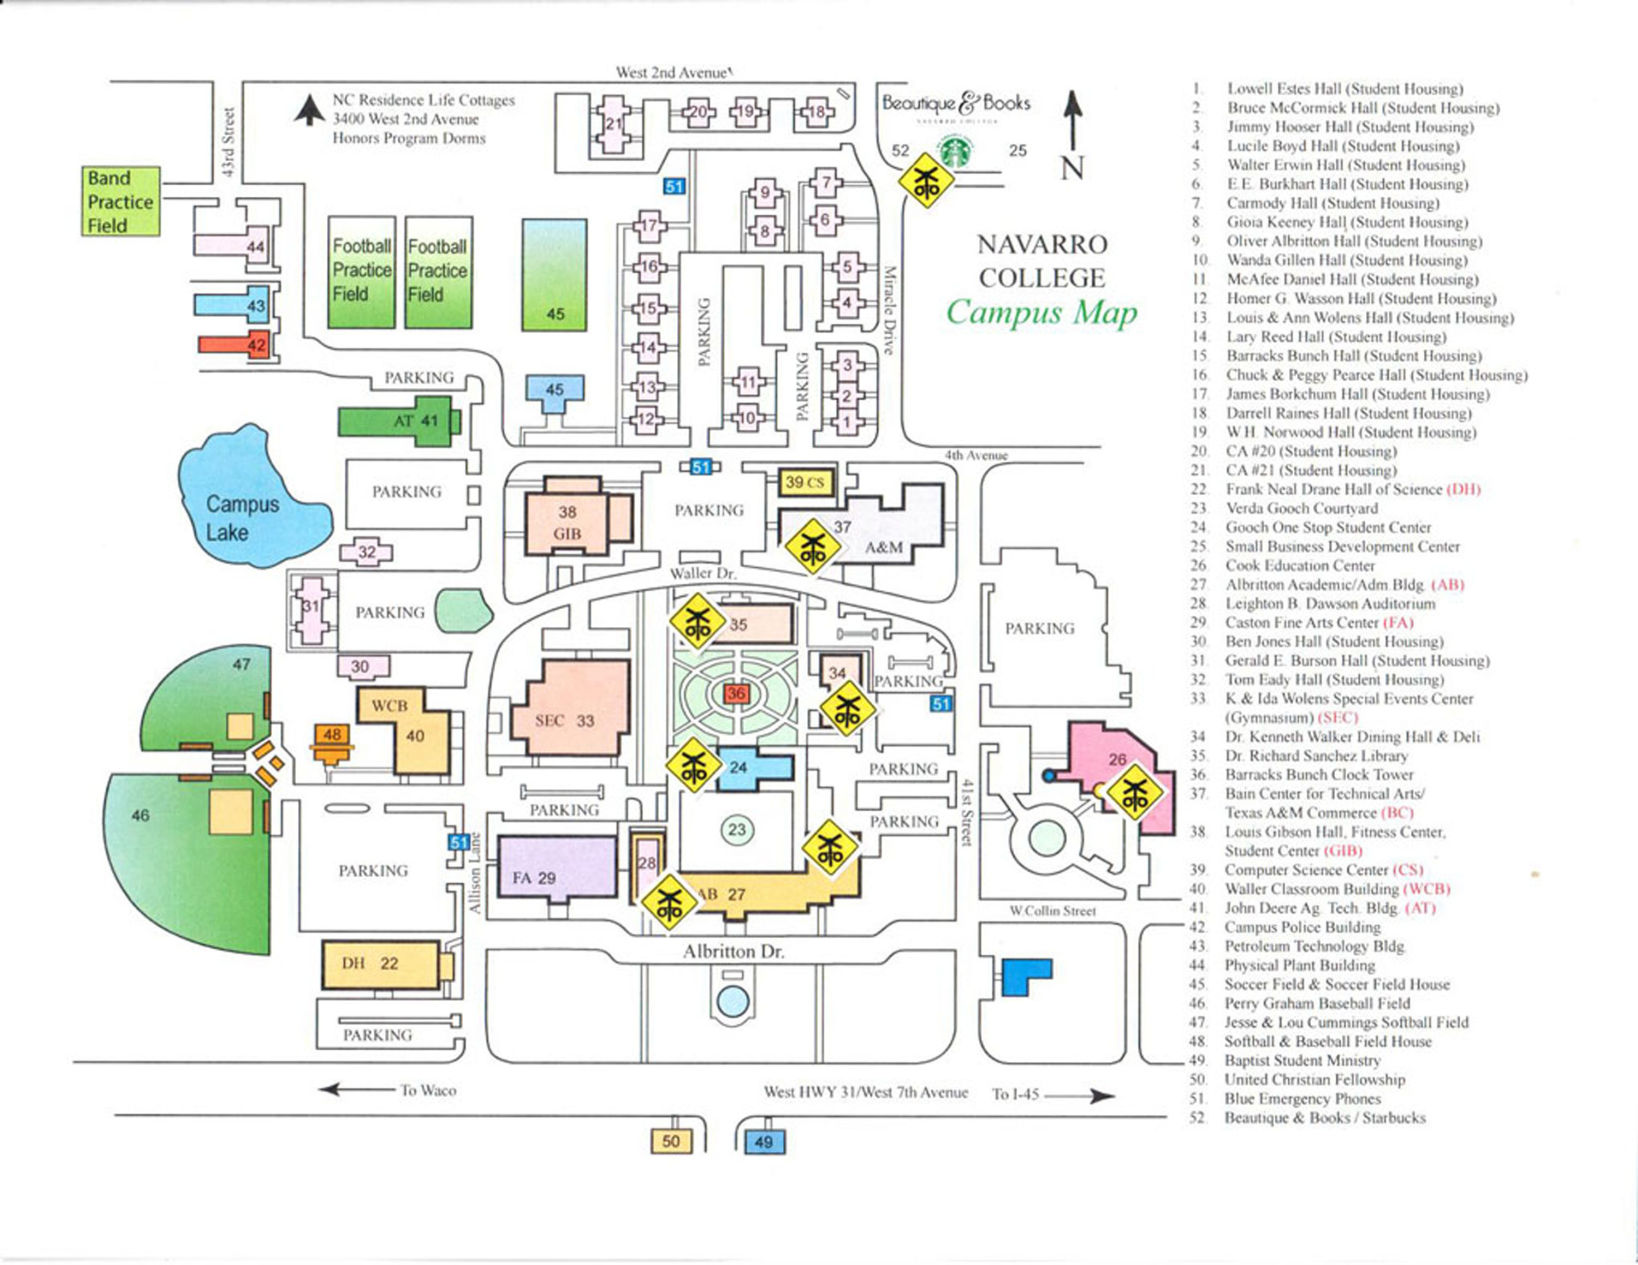 Navarro College Campus Map.Navarro College Waxahachie Campus Map Www Miifotos Com